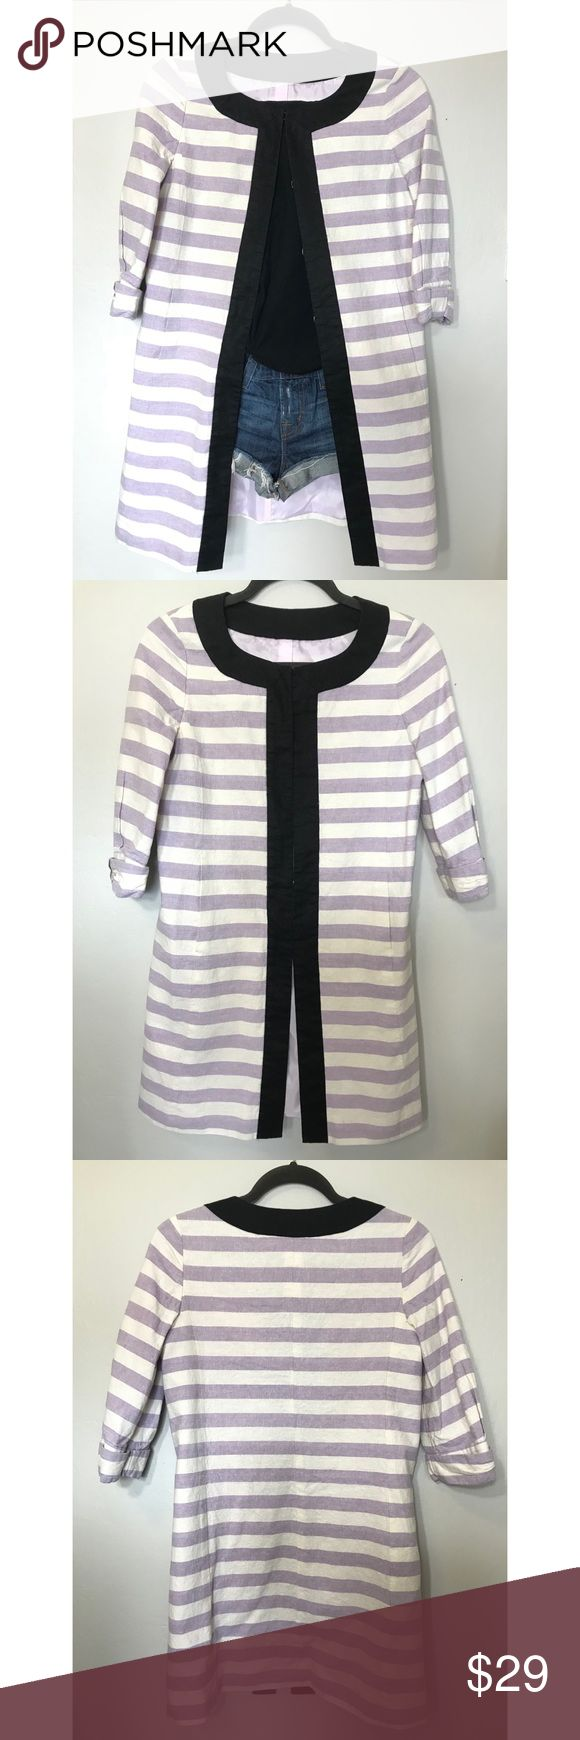 Long stripe jacket Super cute long jacket that you can wear as semi-formal and casual💜 I love to wear with jean shorts  Japanese brand Lavender & white stripe with black trim Outer : cotton 51% linen 49%  Lining : polyester 100%  Great condition, no wear or tear Jackets & Coats